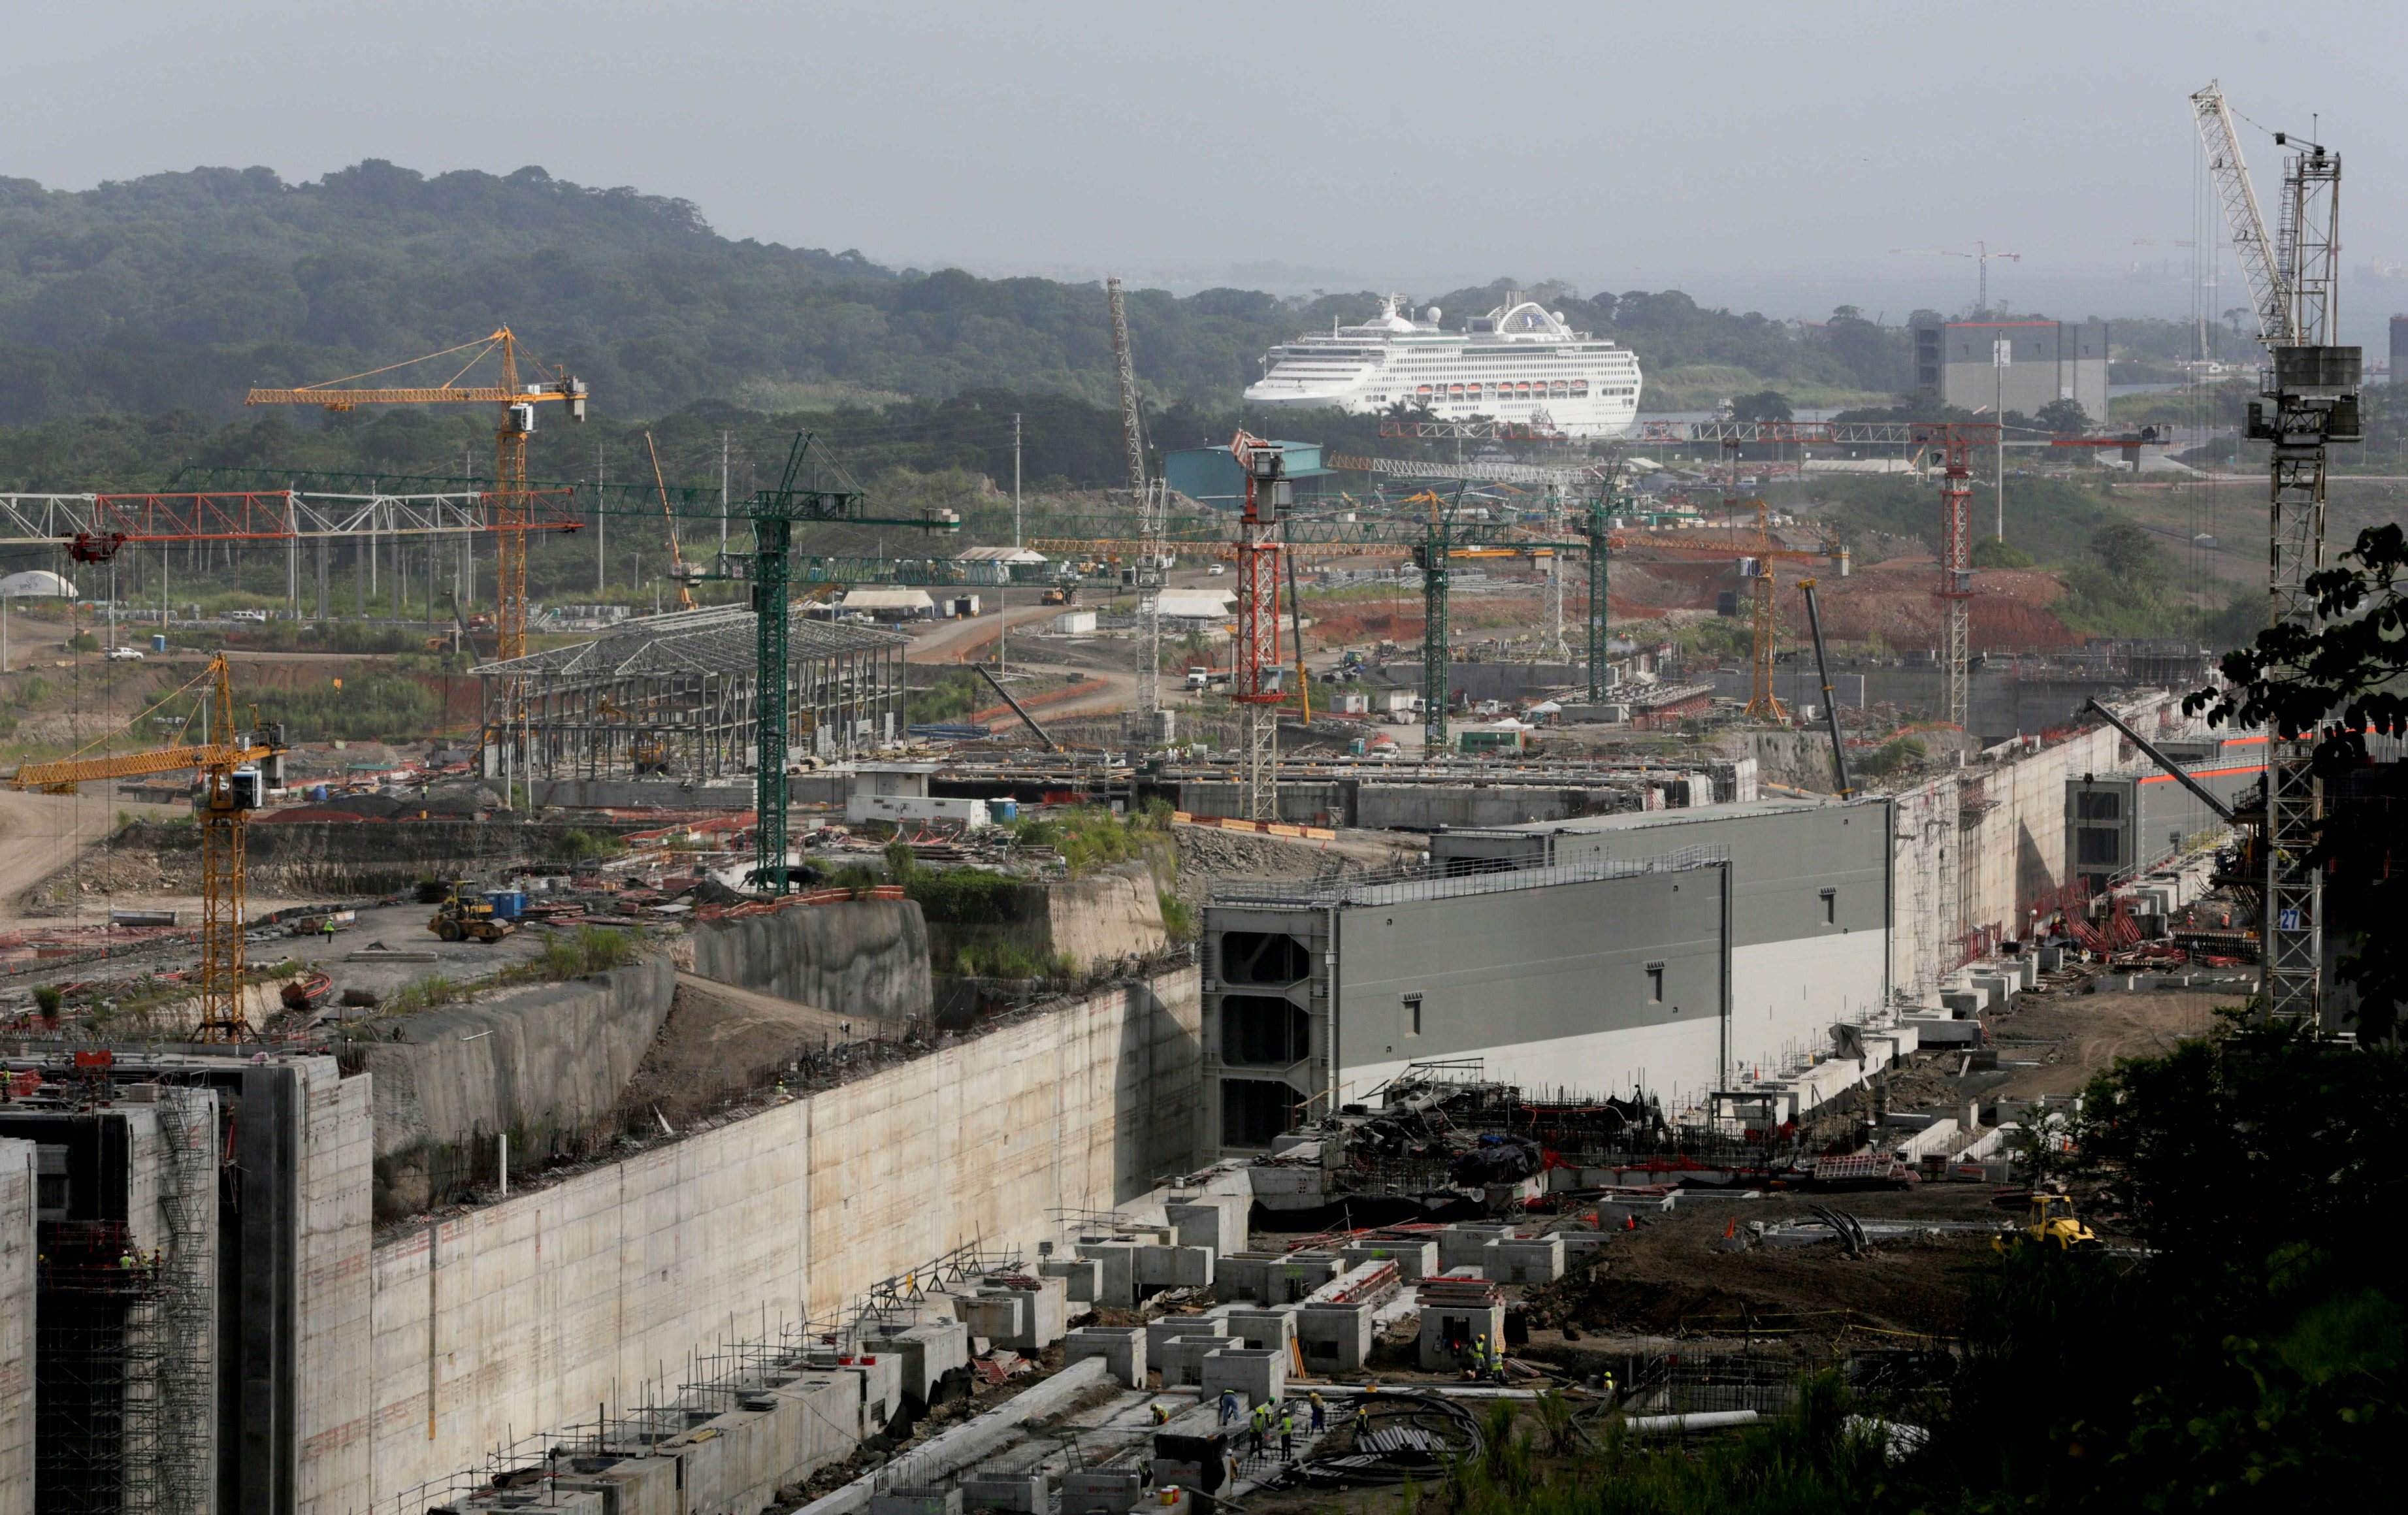 Panama Canal turns 100 amid doubts